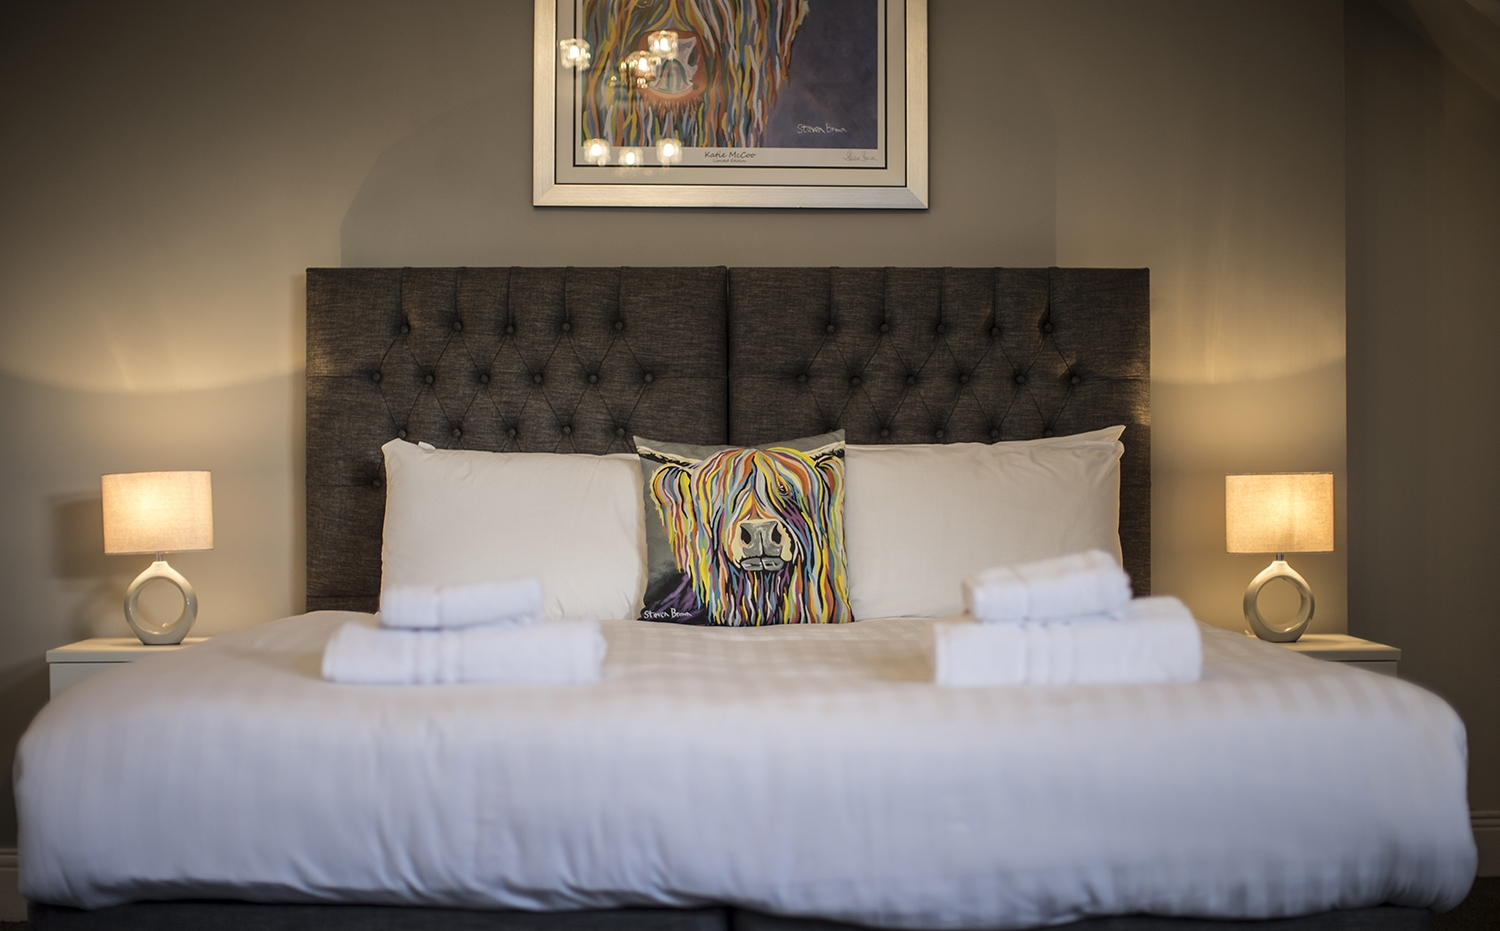 Budget-boutique hotels win over visitors and investors as new Hotel 52 Stanley launches in North East